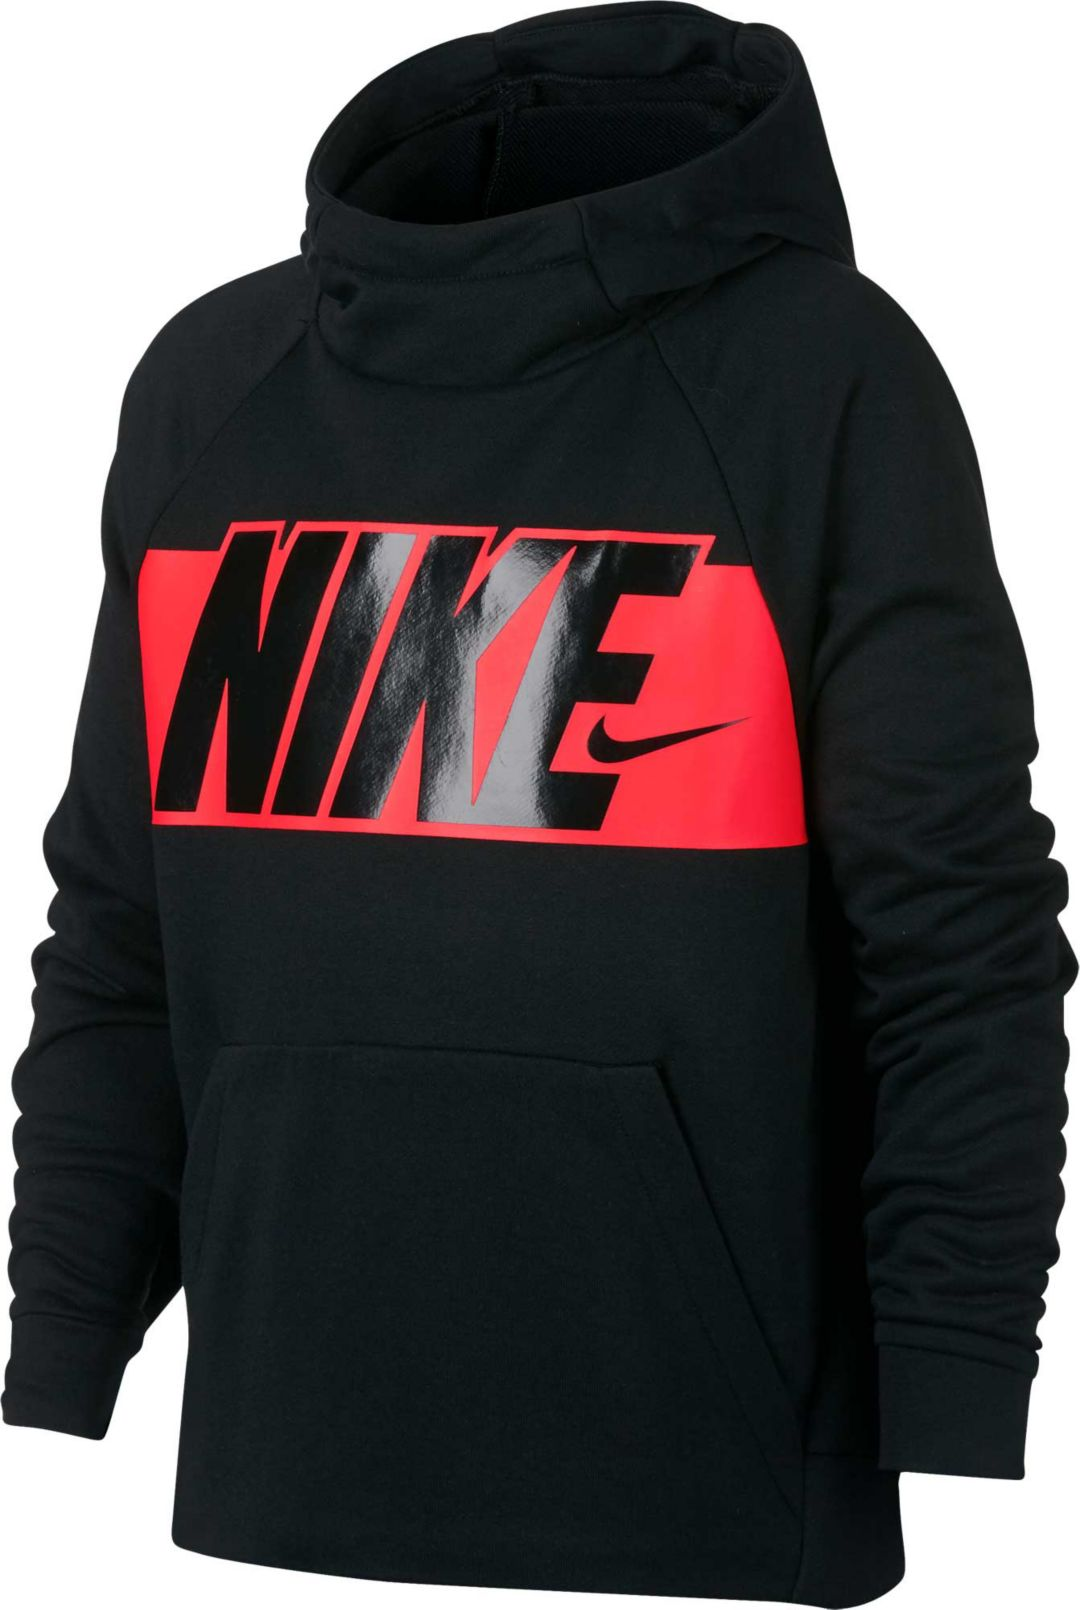 9ad94a2f8 Nike Boys' Dry Graphic Hoodie. noImageFound. Previous